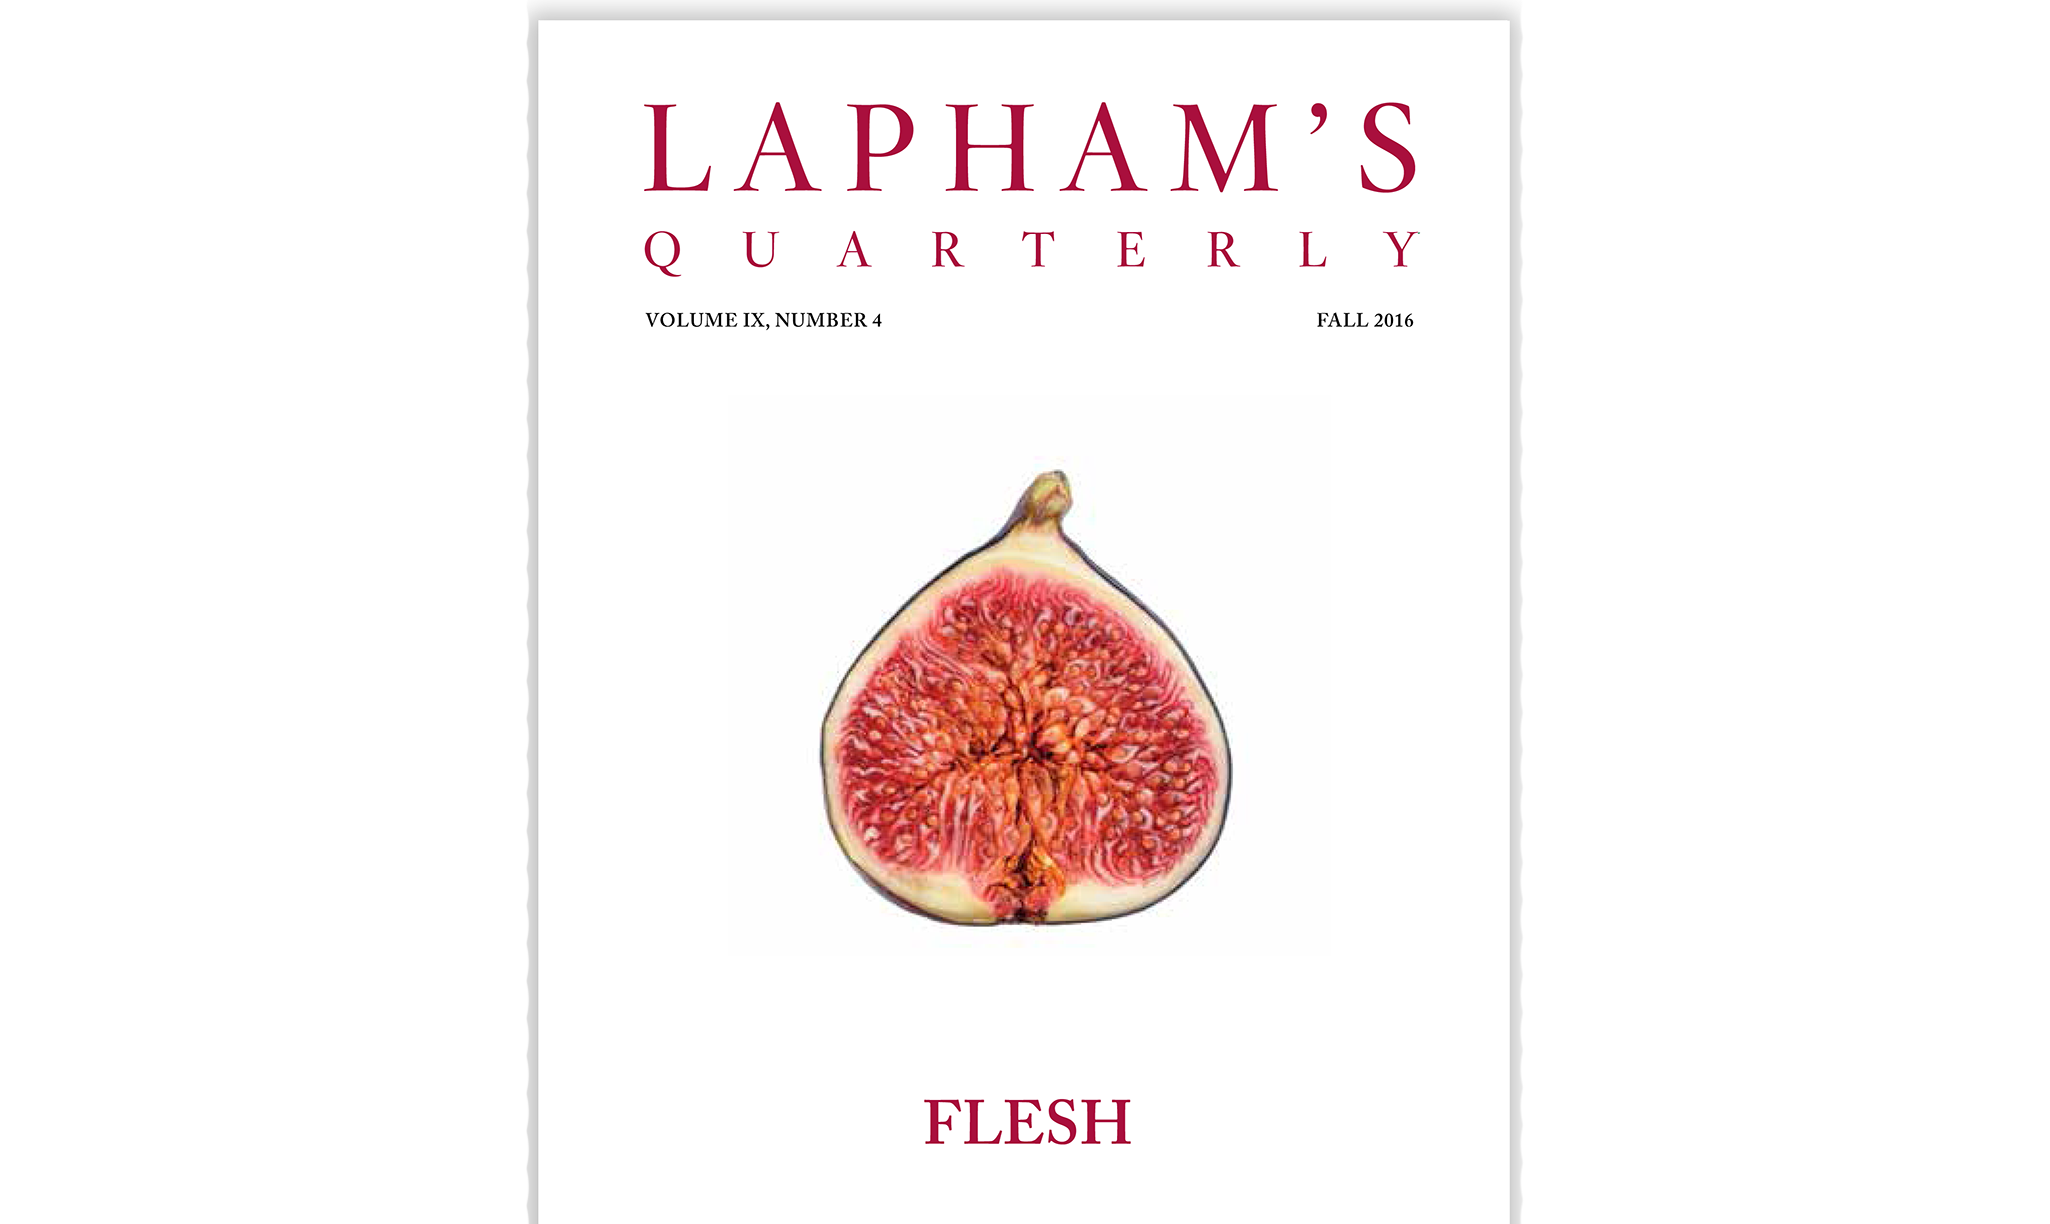 Lapham's Quarterly - Editorial work at NYC-based publication Lapham's Quarterly, where responsibilities included sourcing, copy-editing, and proofreading entries as well as writing for the magazine blog.